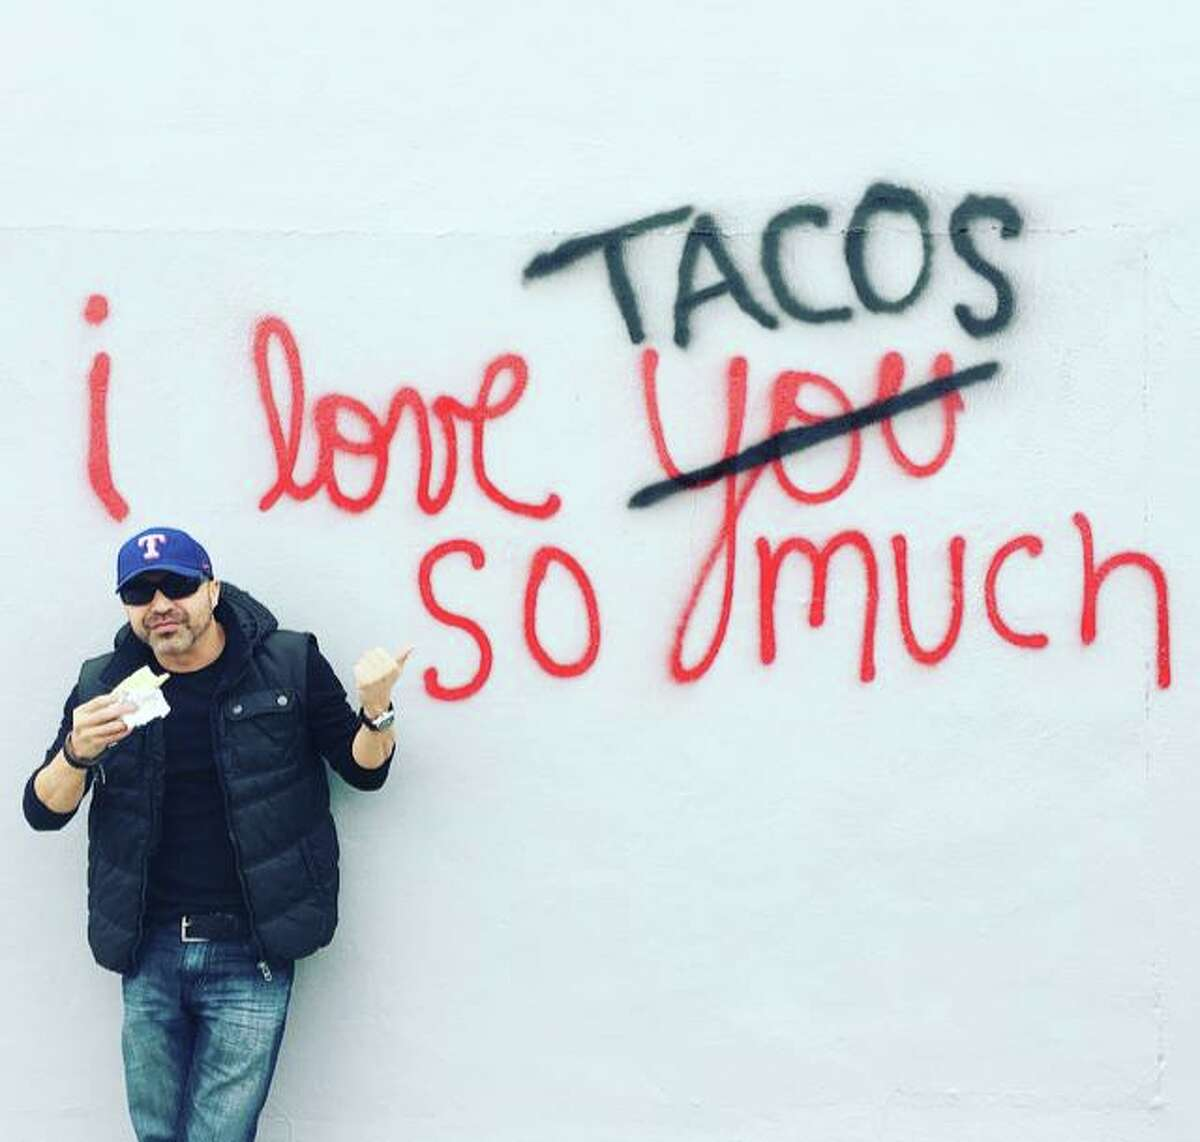 San Antonio has rebranded an iconic Austin landmark with an Alamo City twist to let everyone know when it comes to debating which city loves tacos more, there's no comparison.